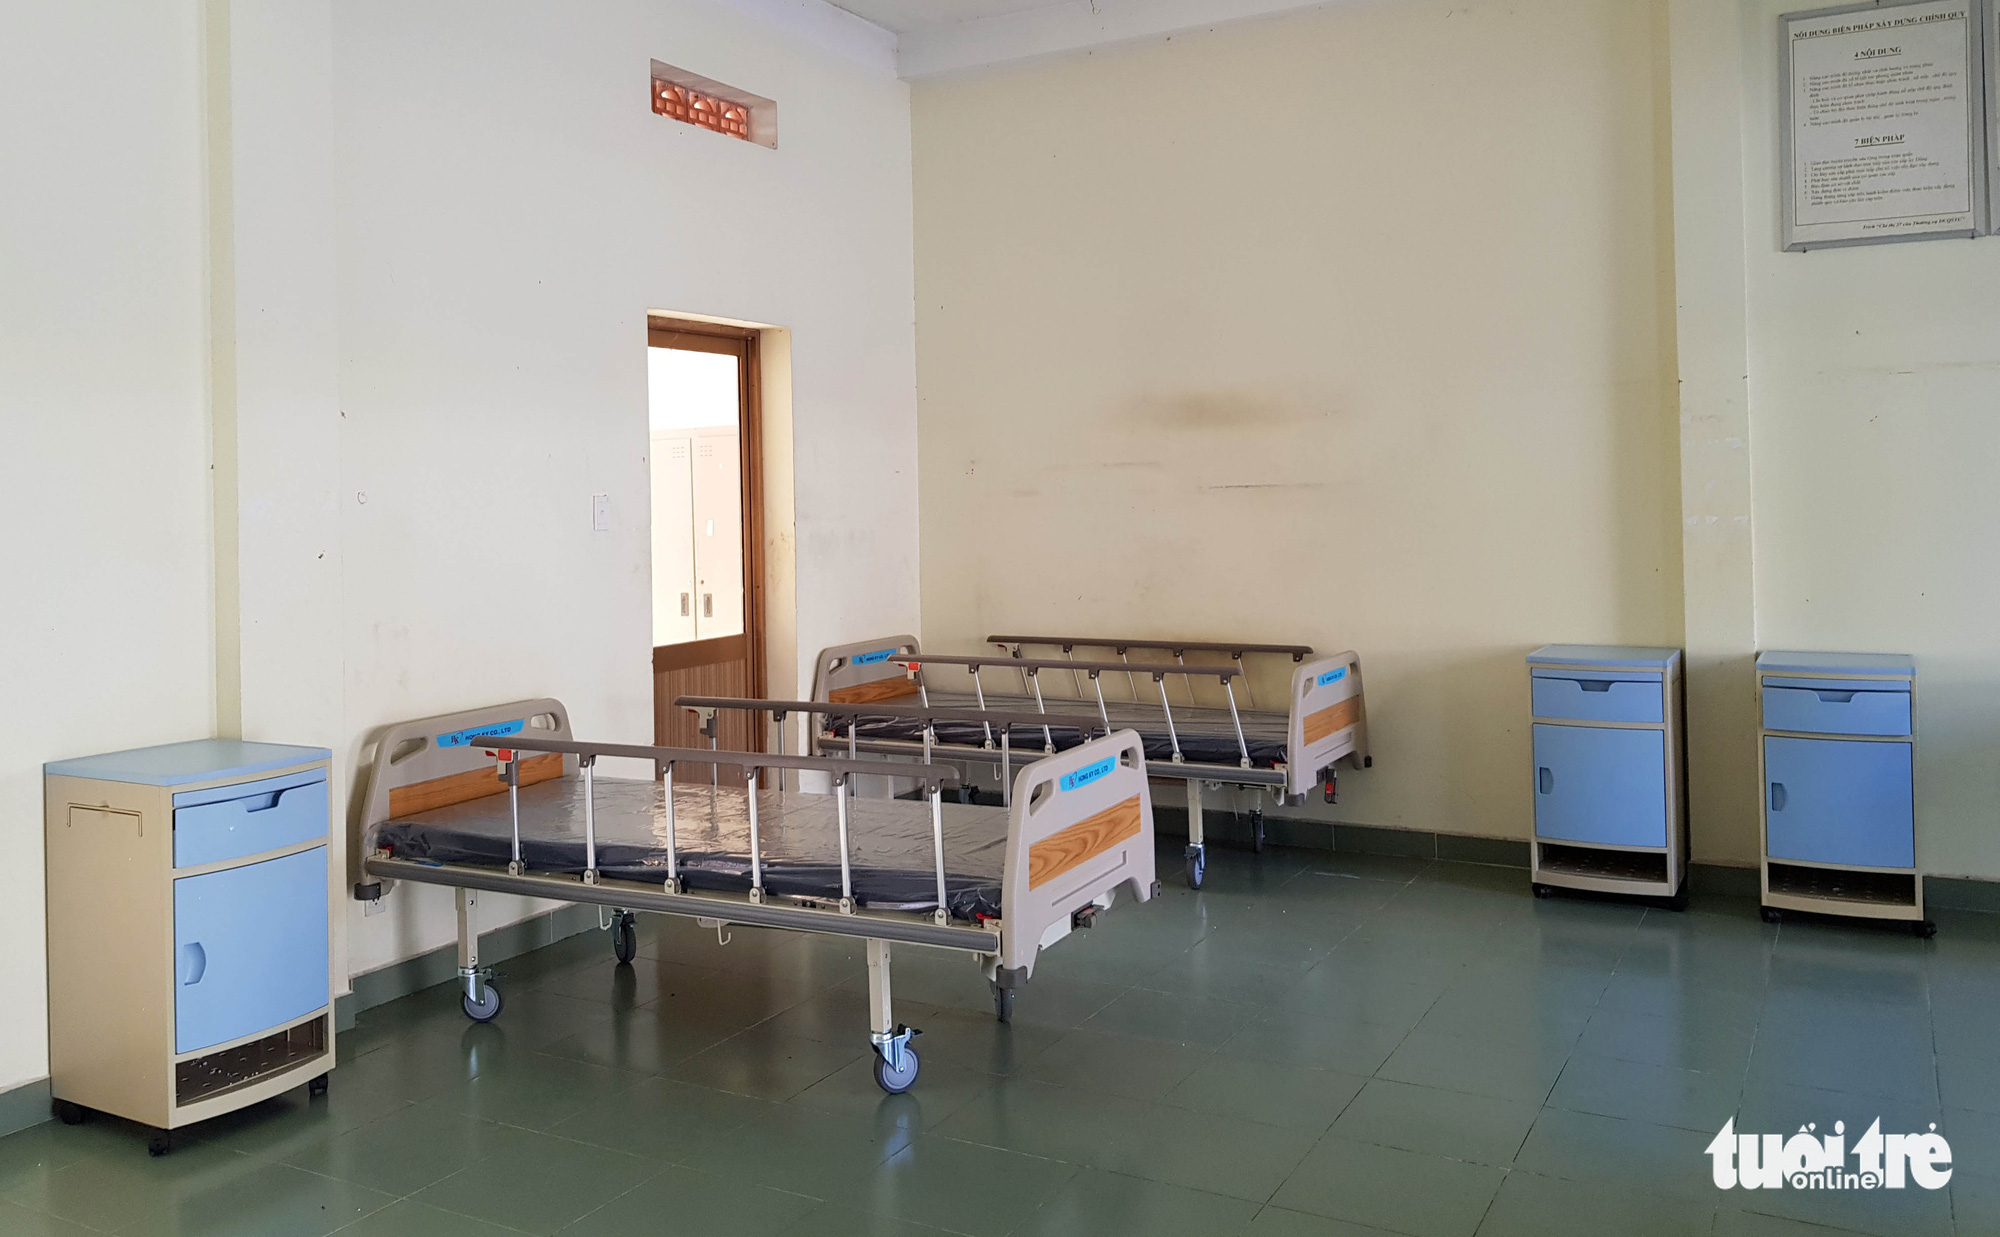 Inside one of the rooms of the makeshift hospital. Photo: Ngoc Hien / Tuoi Tre